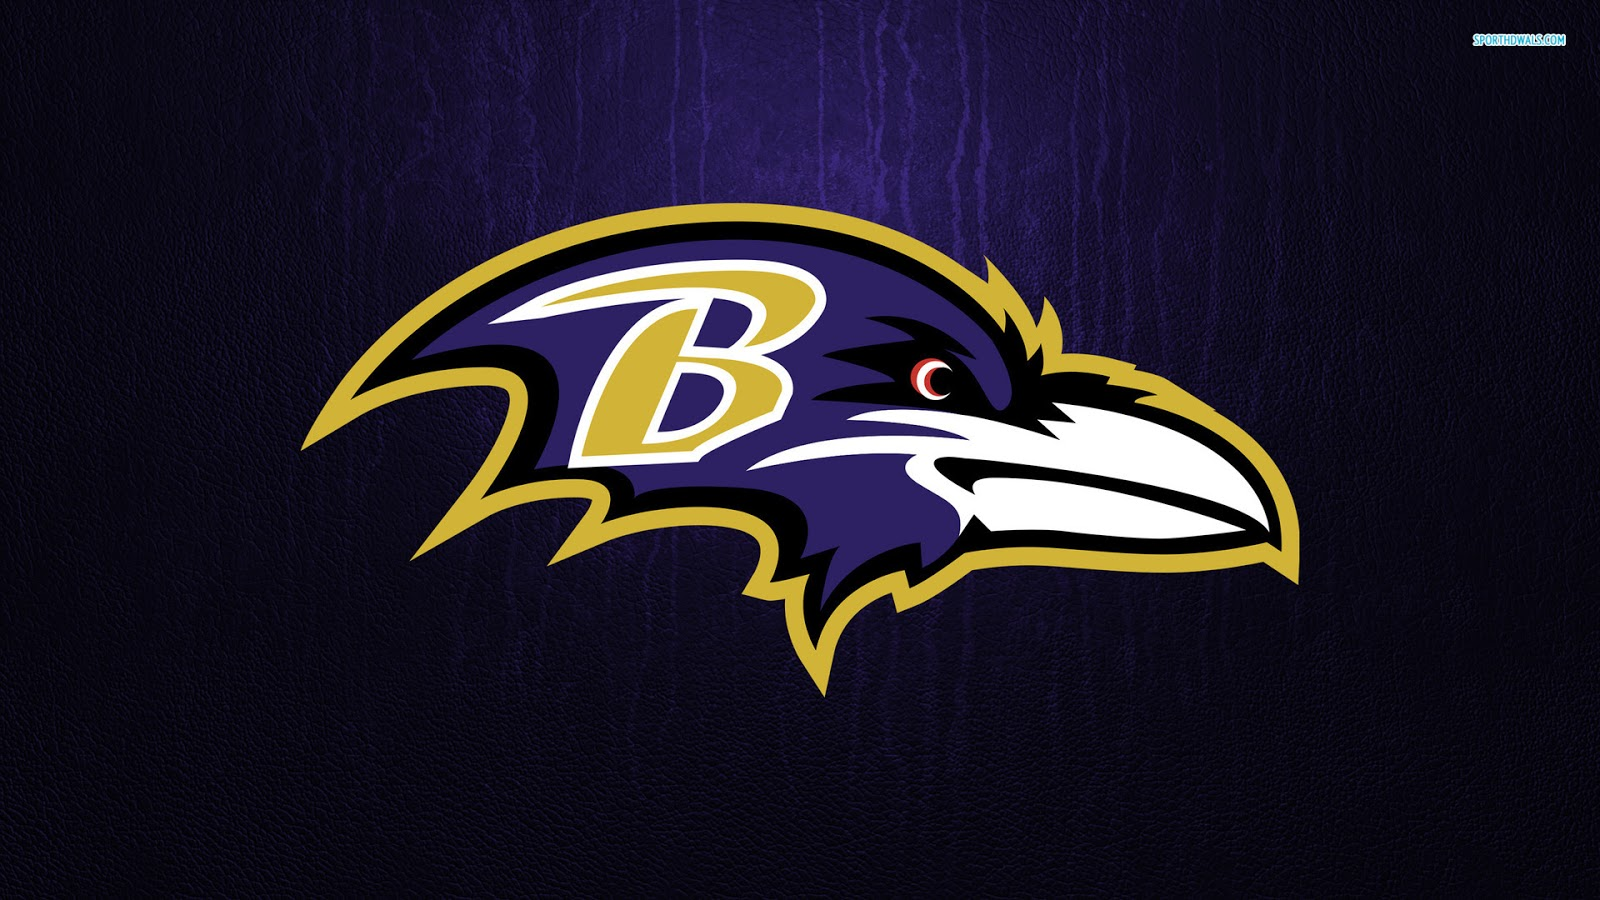 Baltimore Ravens - Free NFL Wallpapers | Free NFL Wallpapers